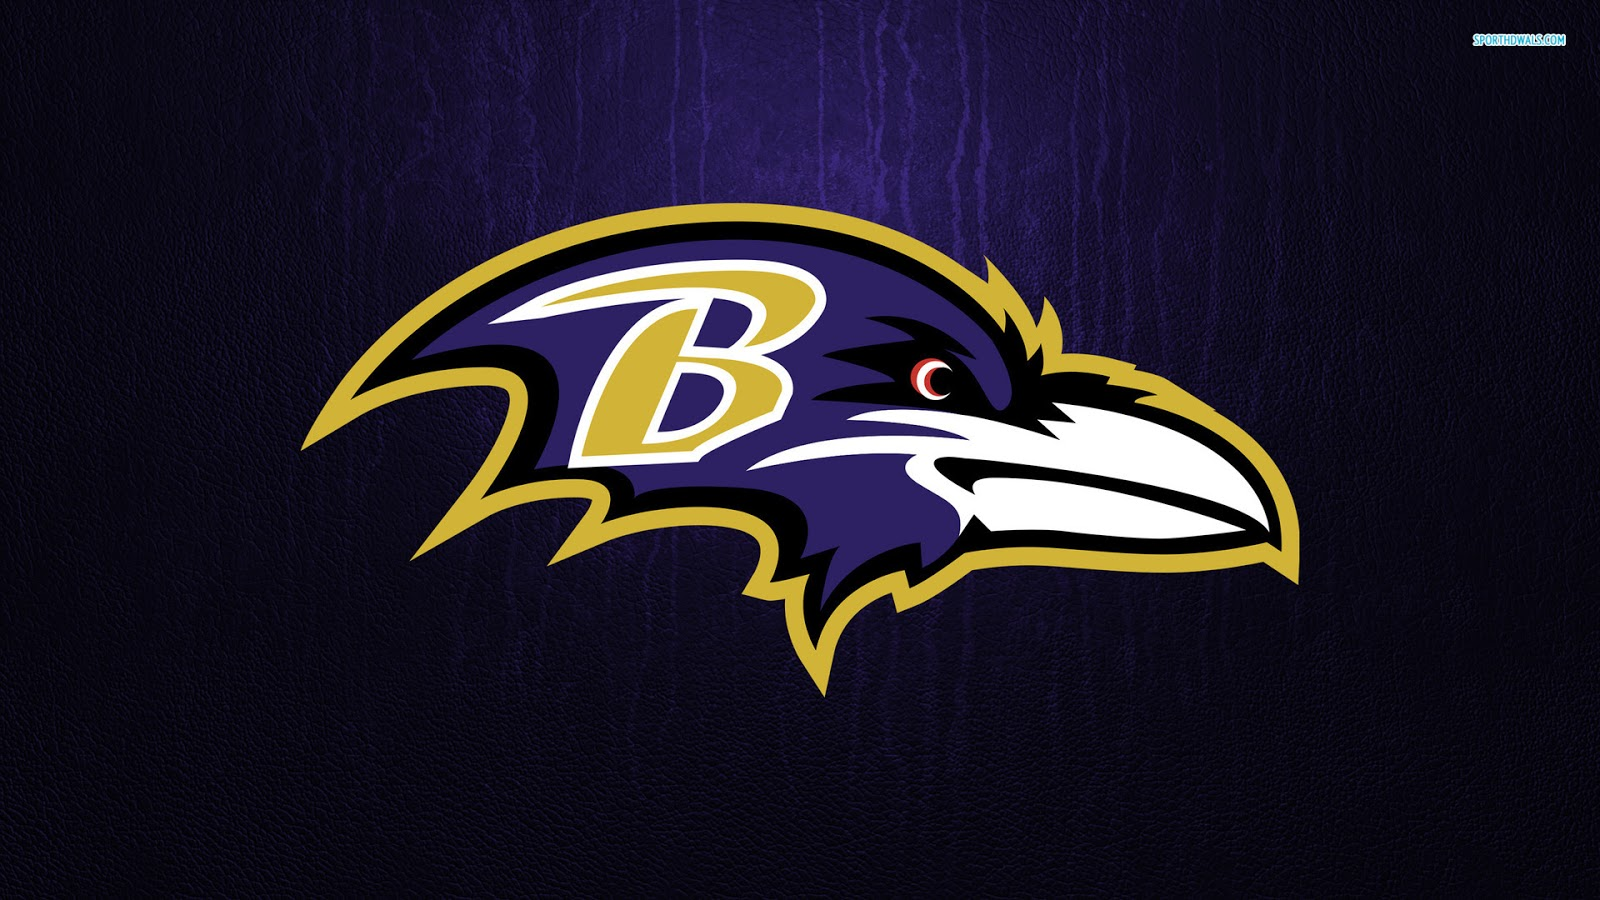 Baltimore Ravens - Free NFL Wallpapers | Free NFL Wallpapers